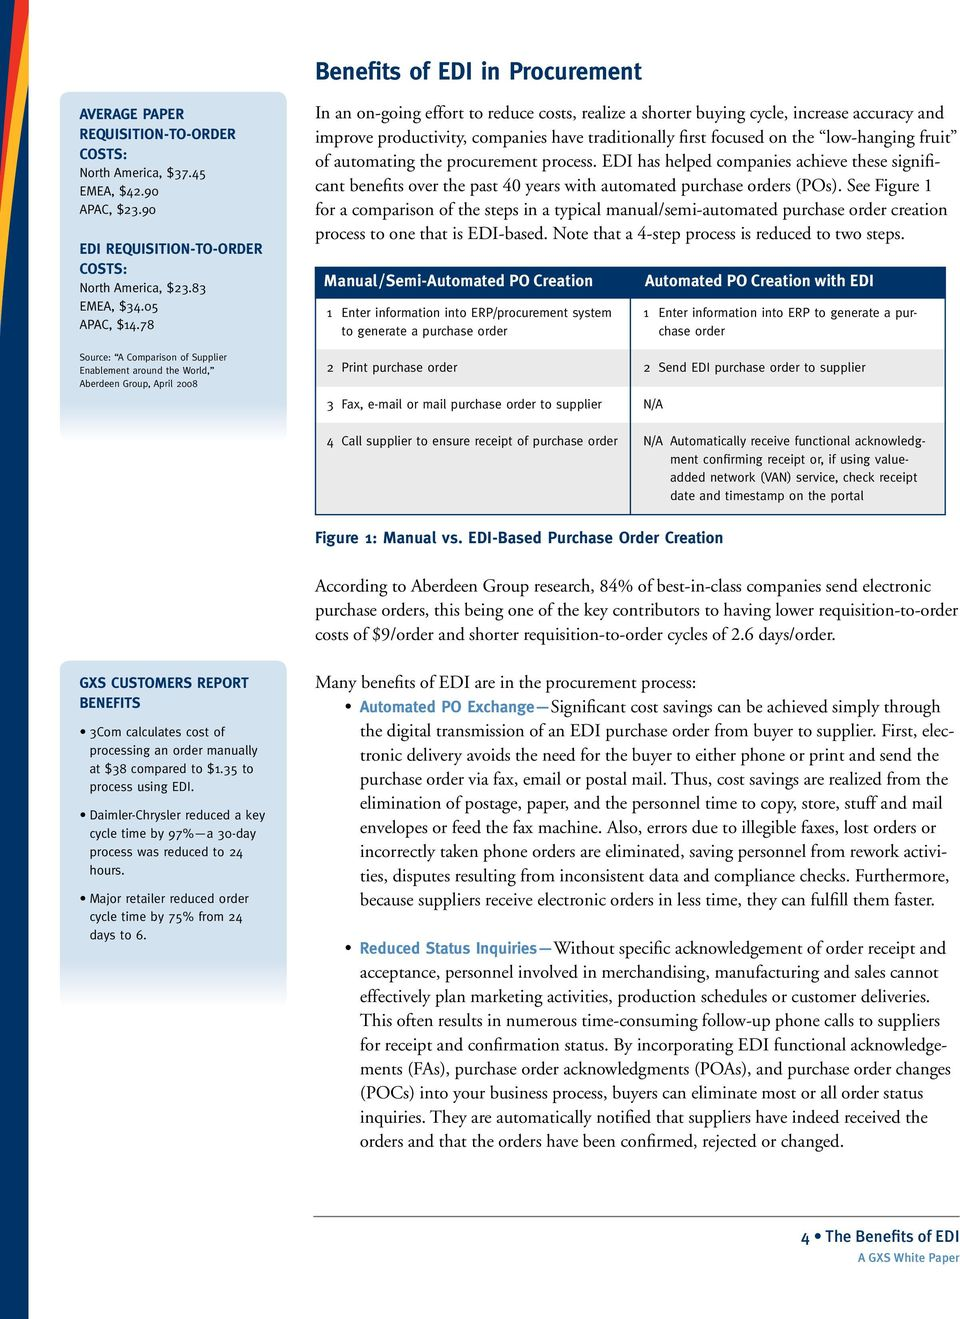 The Benefits of EDI  A GXS White Paper for the Active